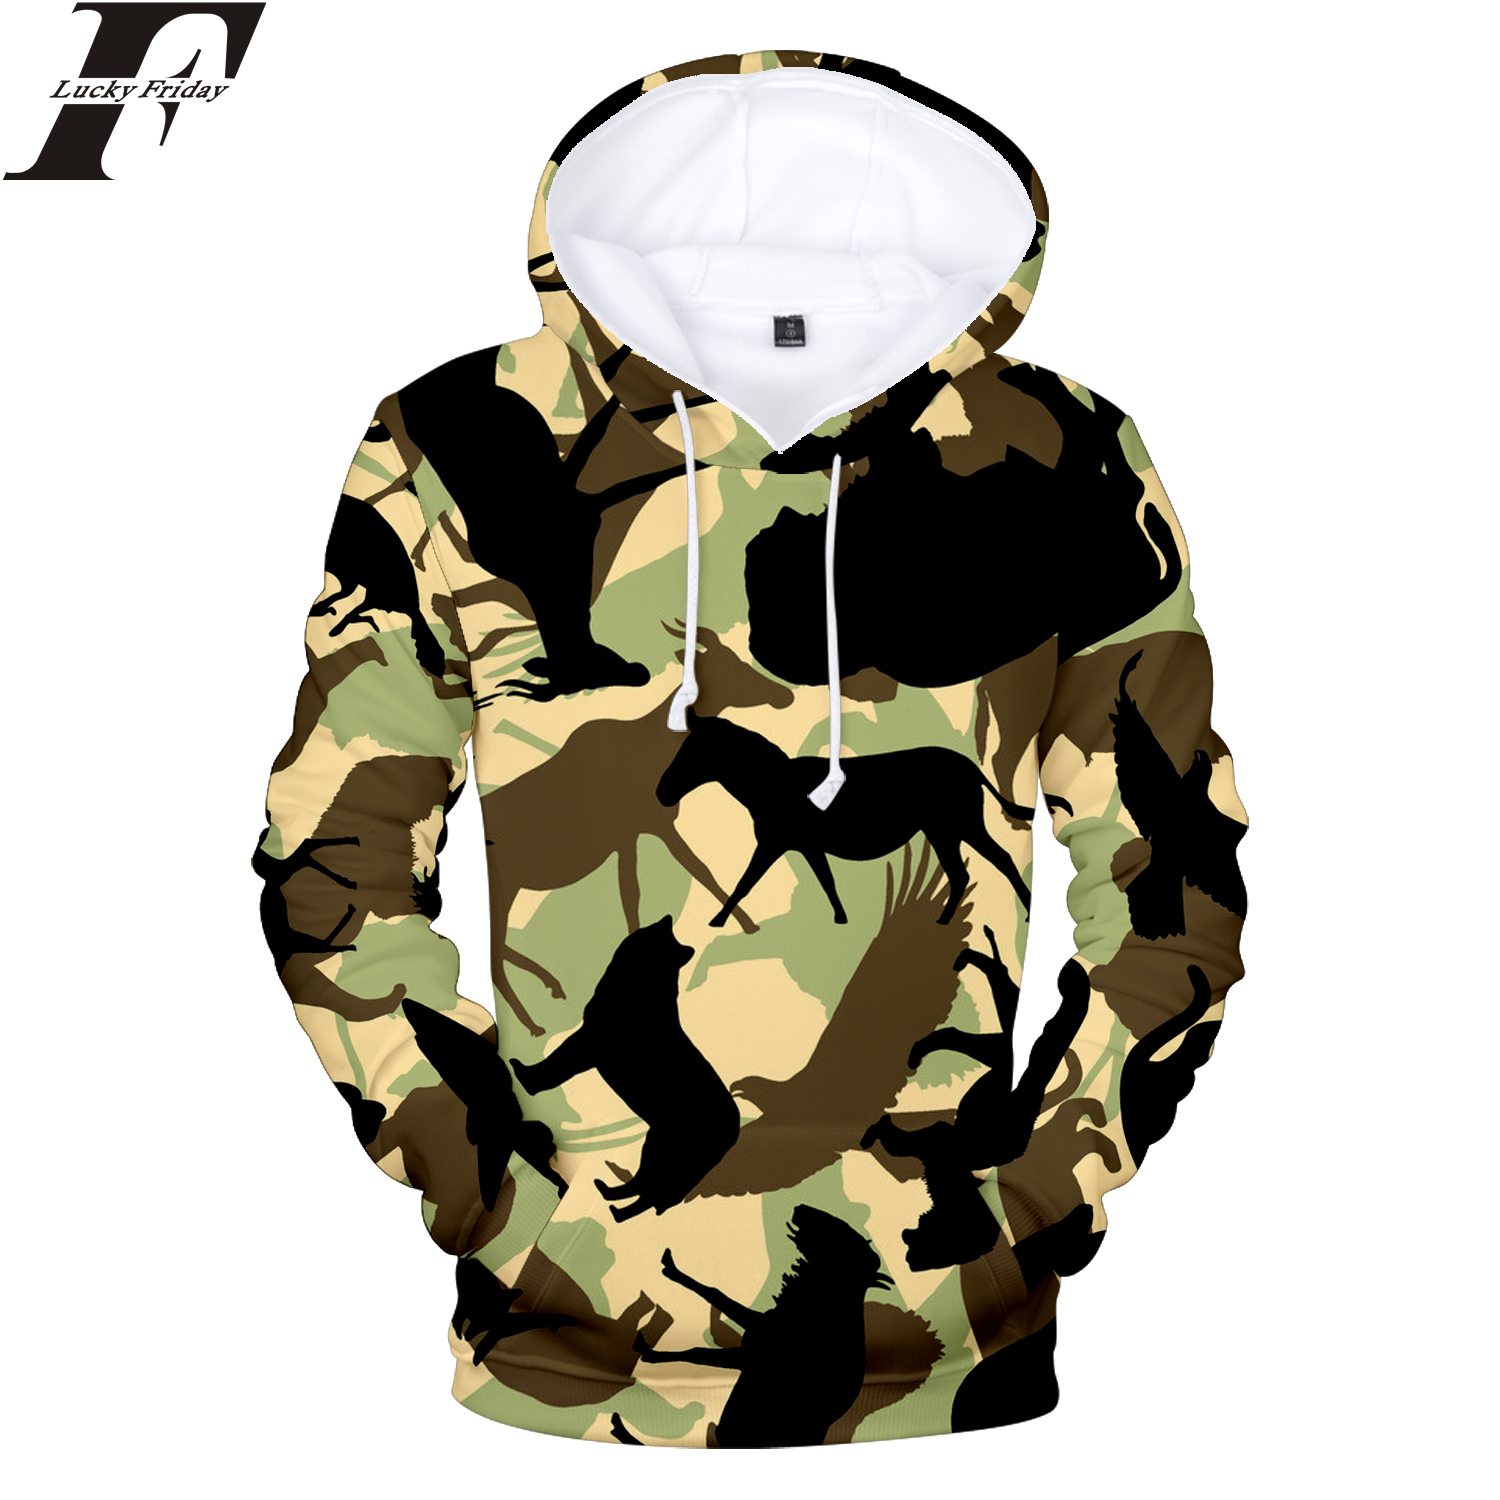 LUCKYFRIDAYF 2018 Camouflage Style 3D Hoodies Sweatshirts Women/Men Hoodies hit hop Hoodies Patchwork Style Casual Clothes